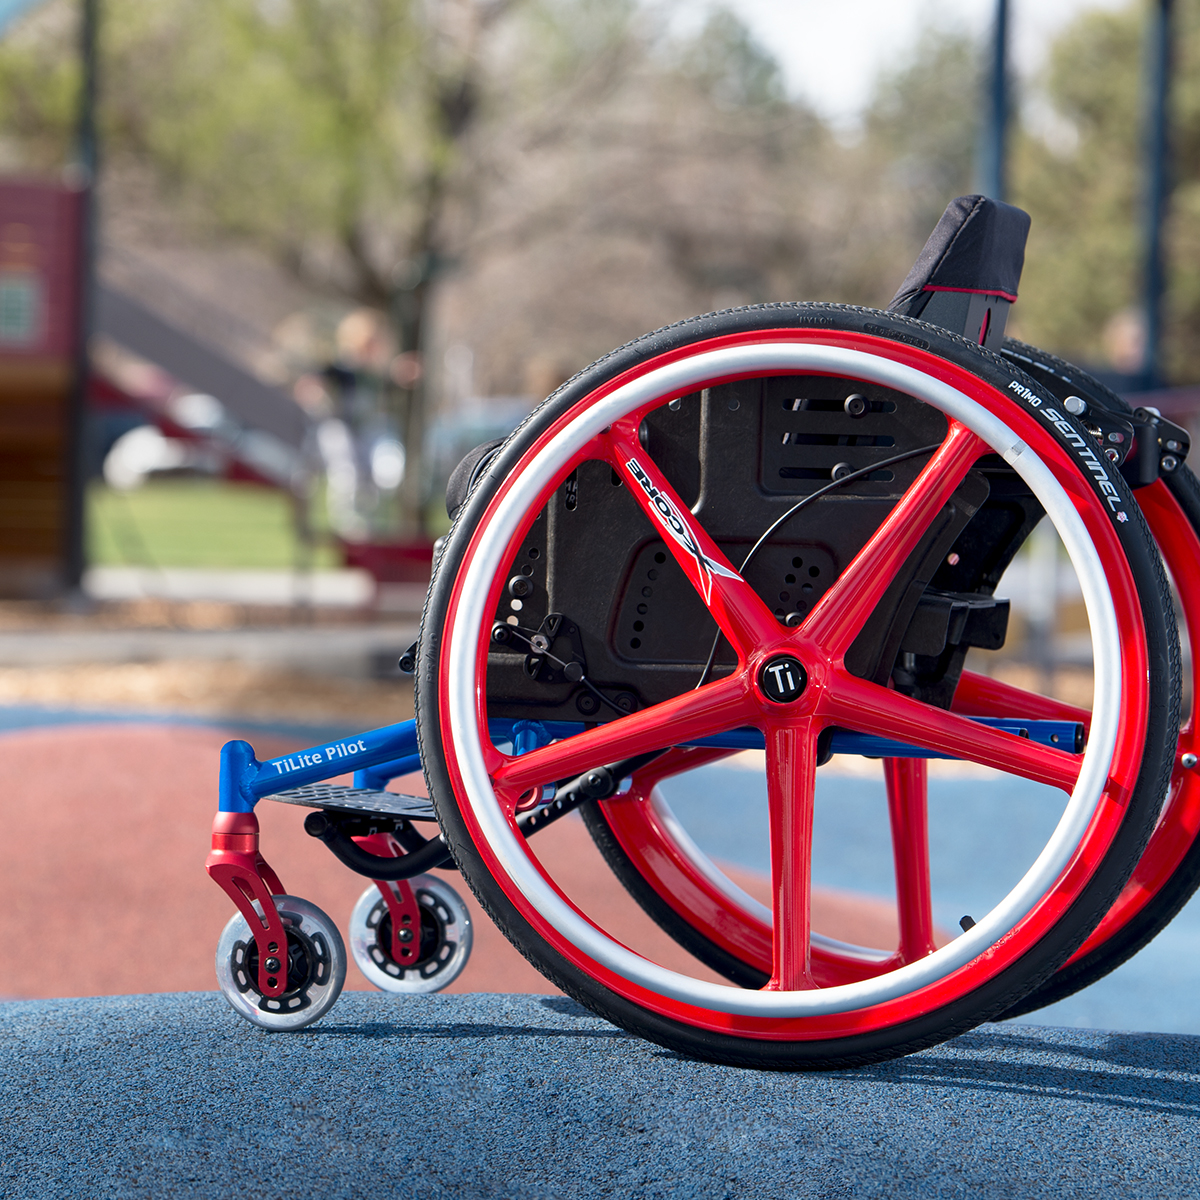 TiLite Pilot Pediatric Youth Wheelchair.